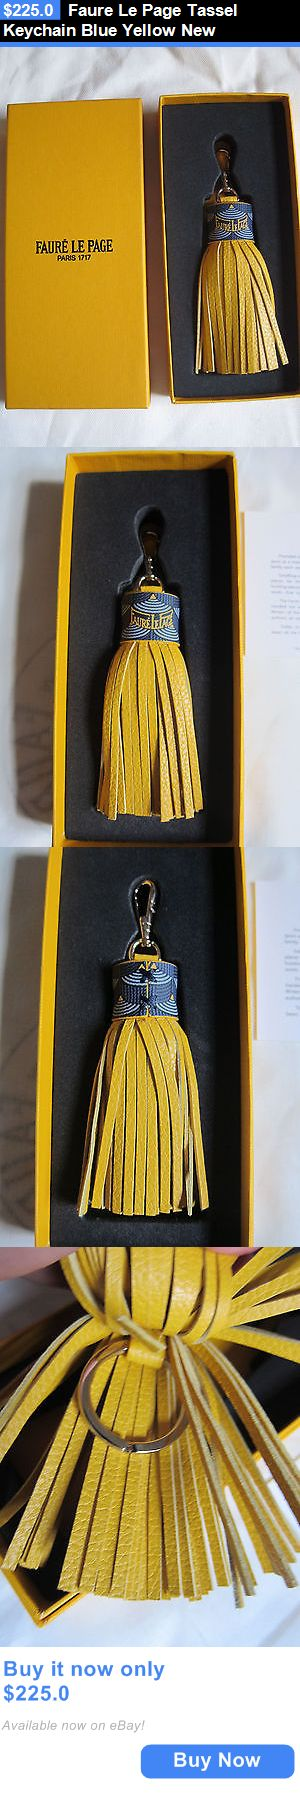 Women Bags And Accessories: Faure Le Page Tassel Keychain Blue Yellow New BUY IT NOW ONLY: $225.0